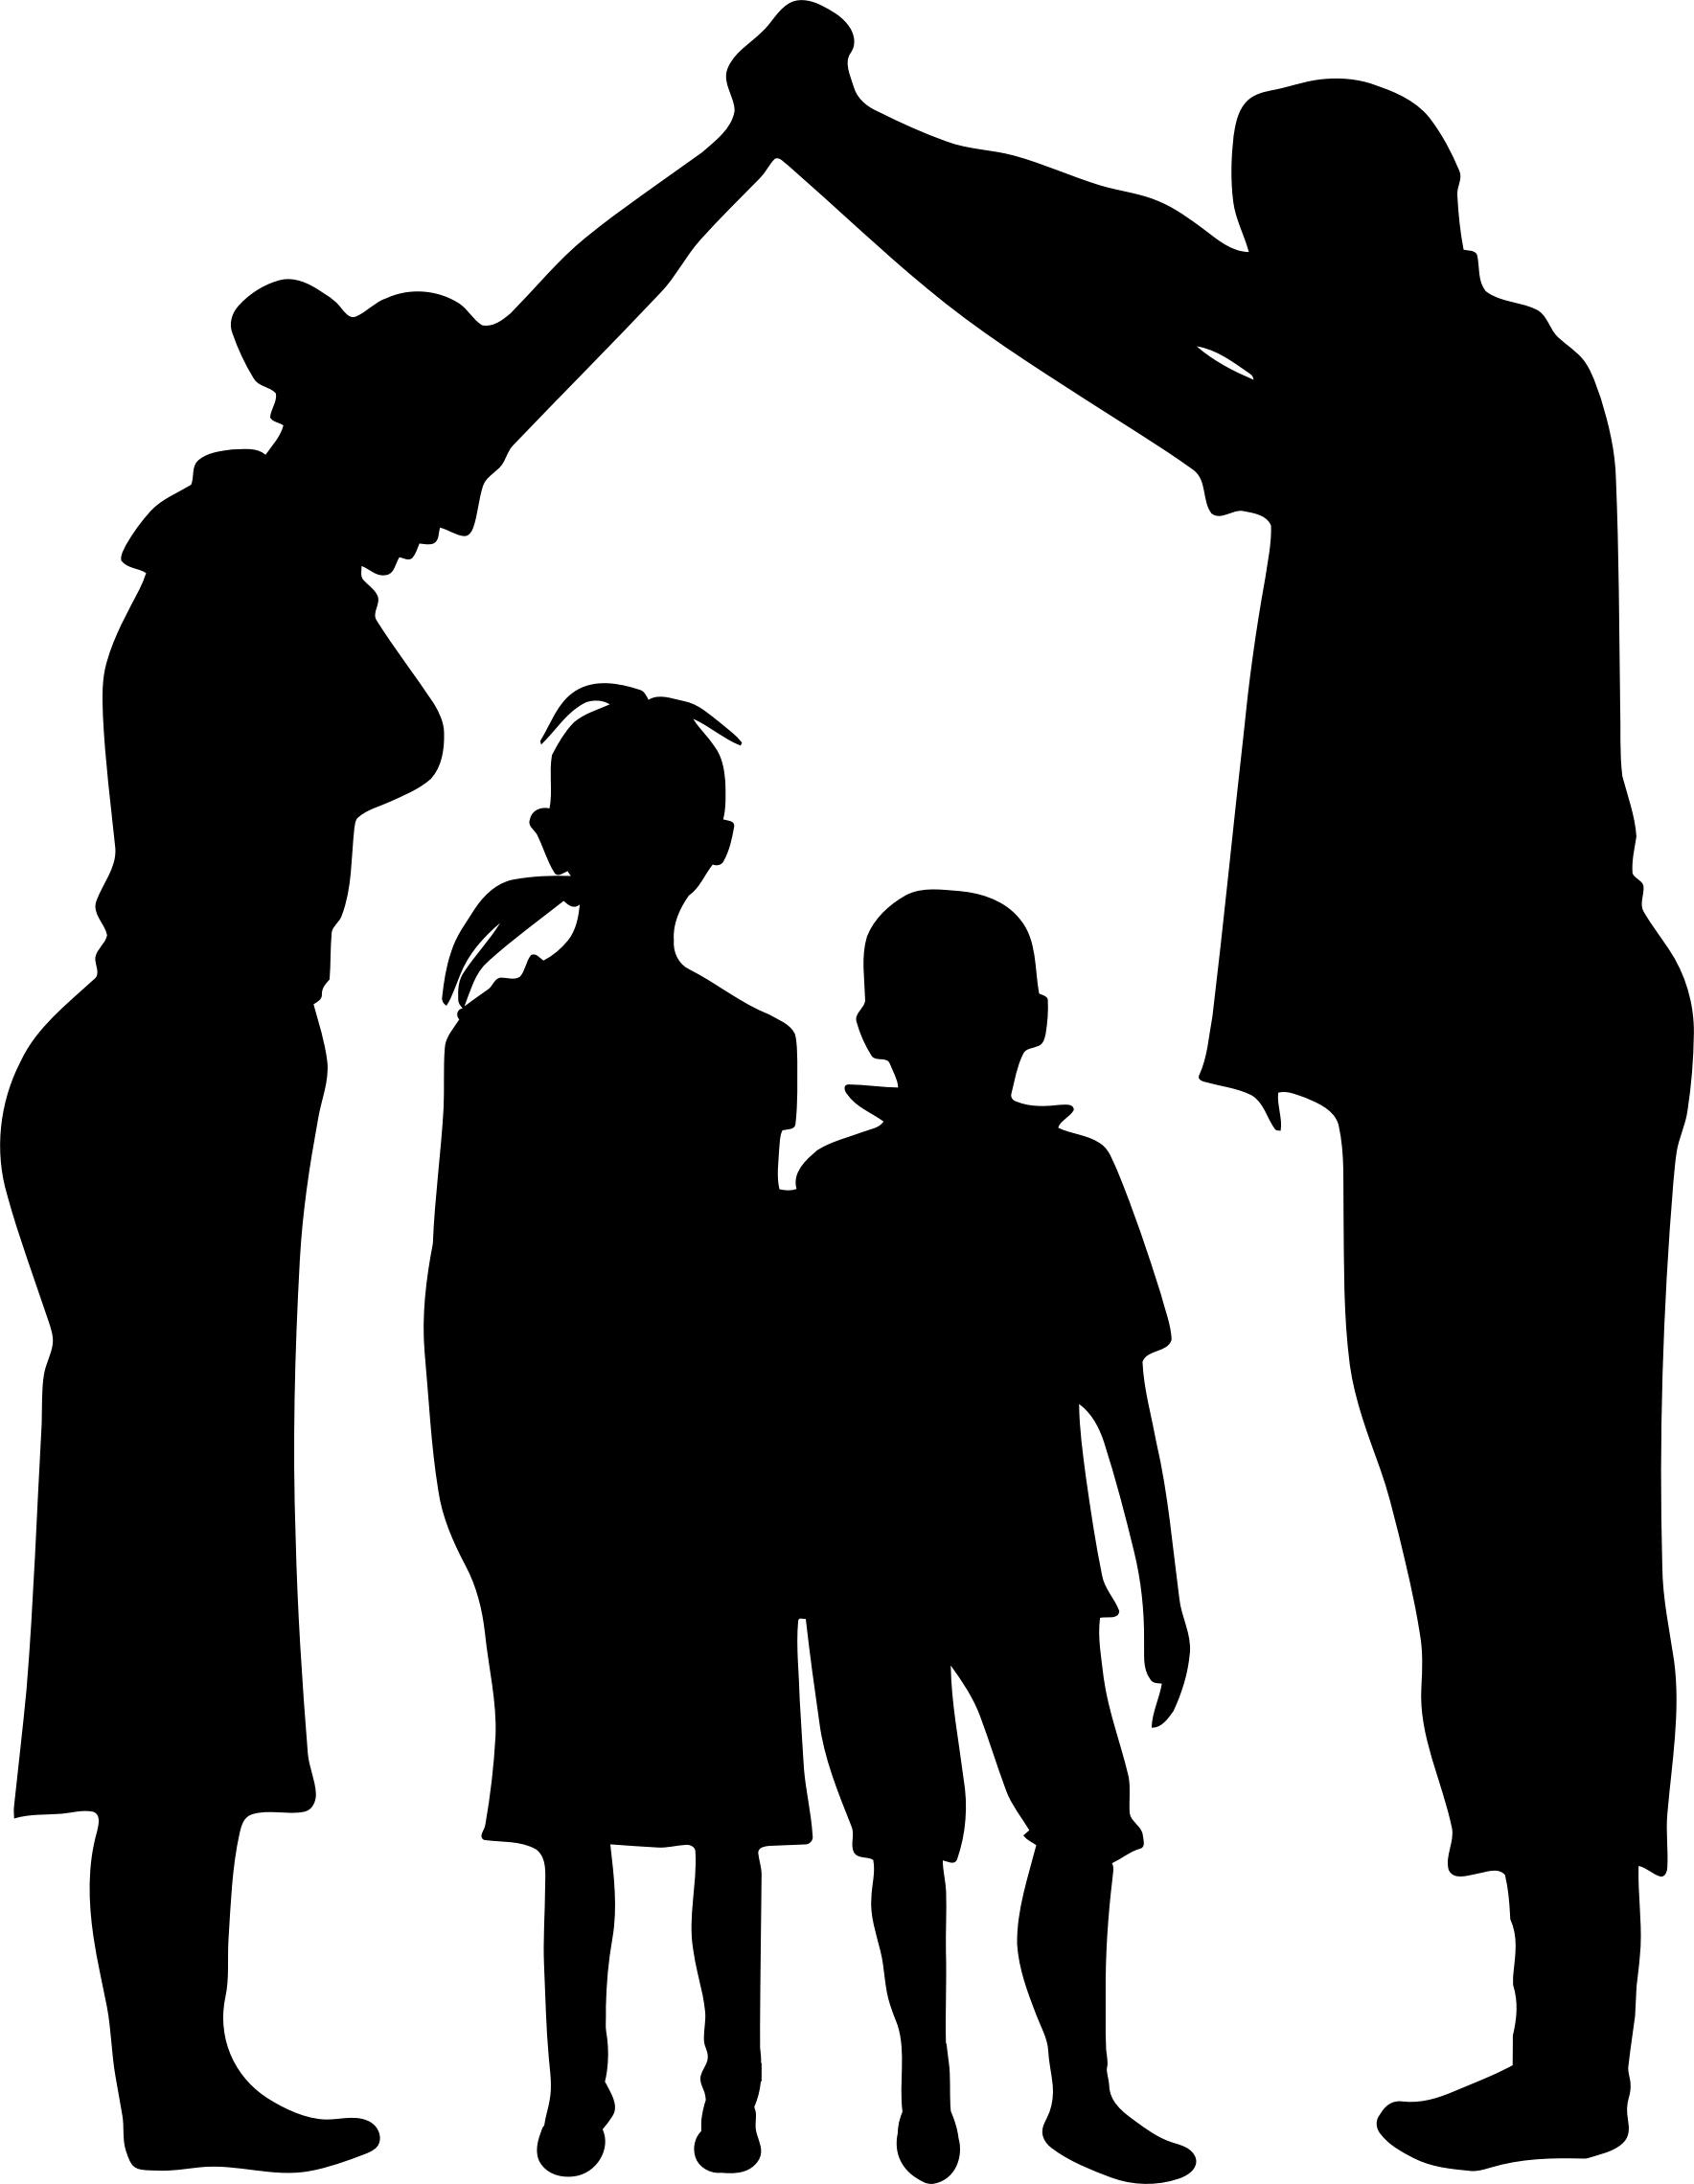 1768x2280 Family Shelter Minus Ground Silhouette Icons Png